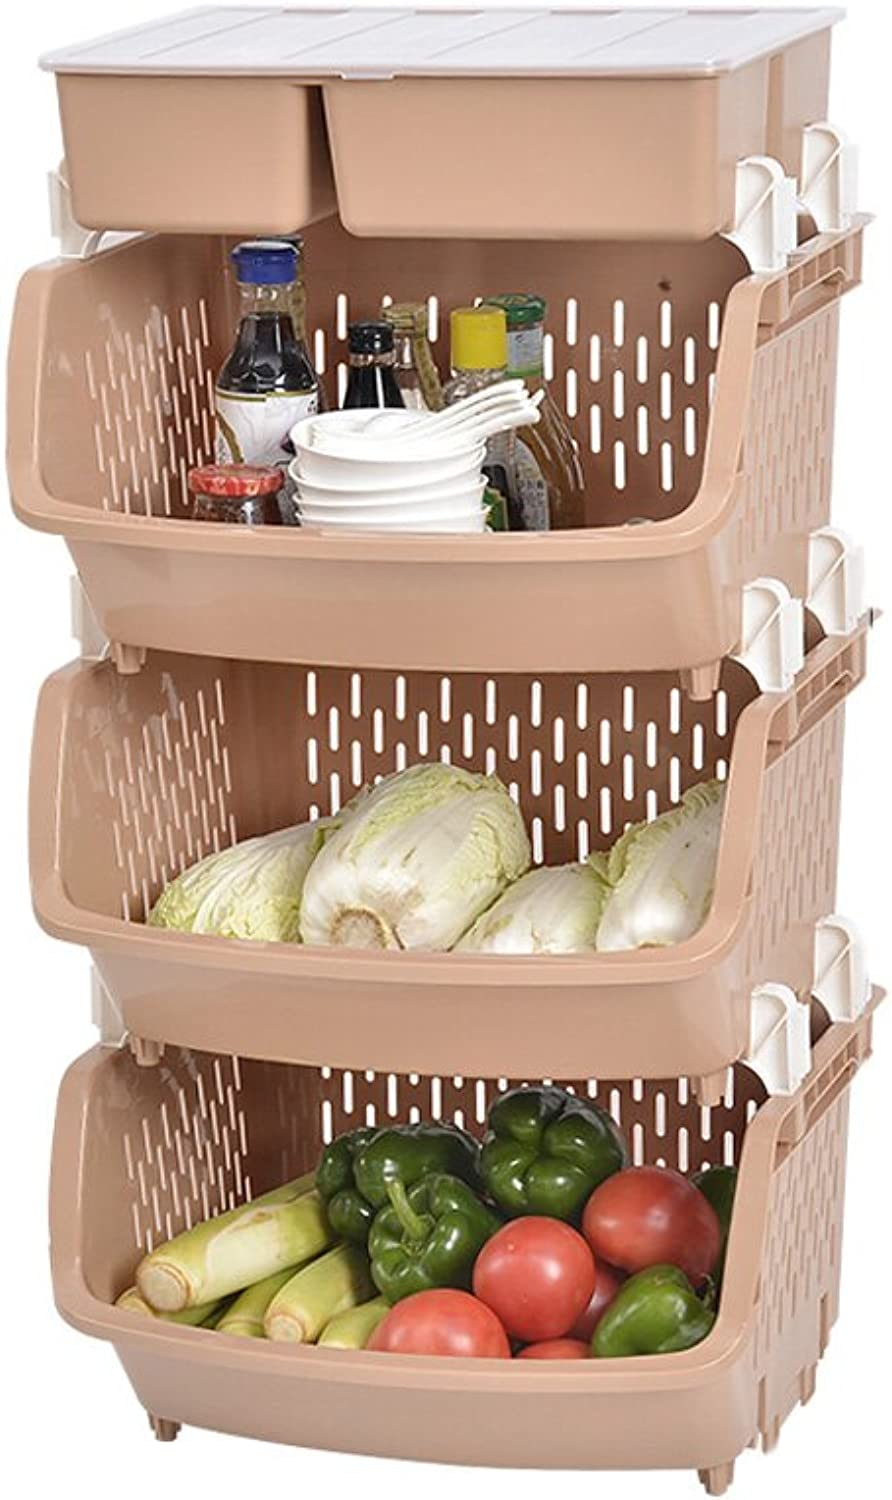 LBYMYB Kitchen Plastic Rack Four-Layer Floor Fruit and Vegetable Rack Storage Rack Drainage Rack Kitchen Storage Rack (color   Khaki)